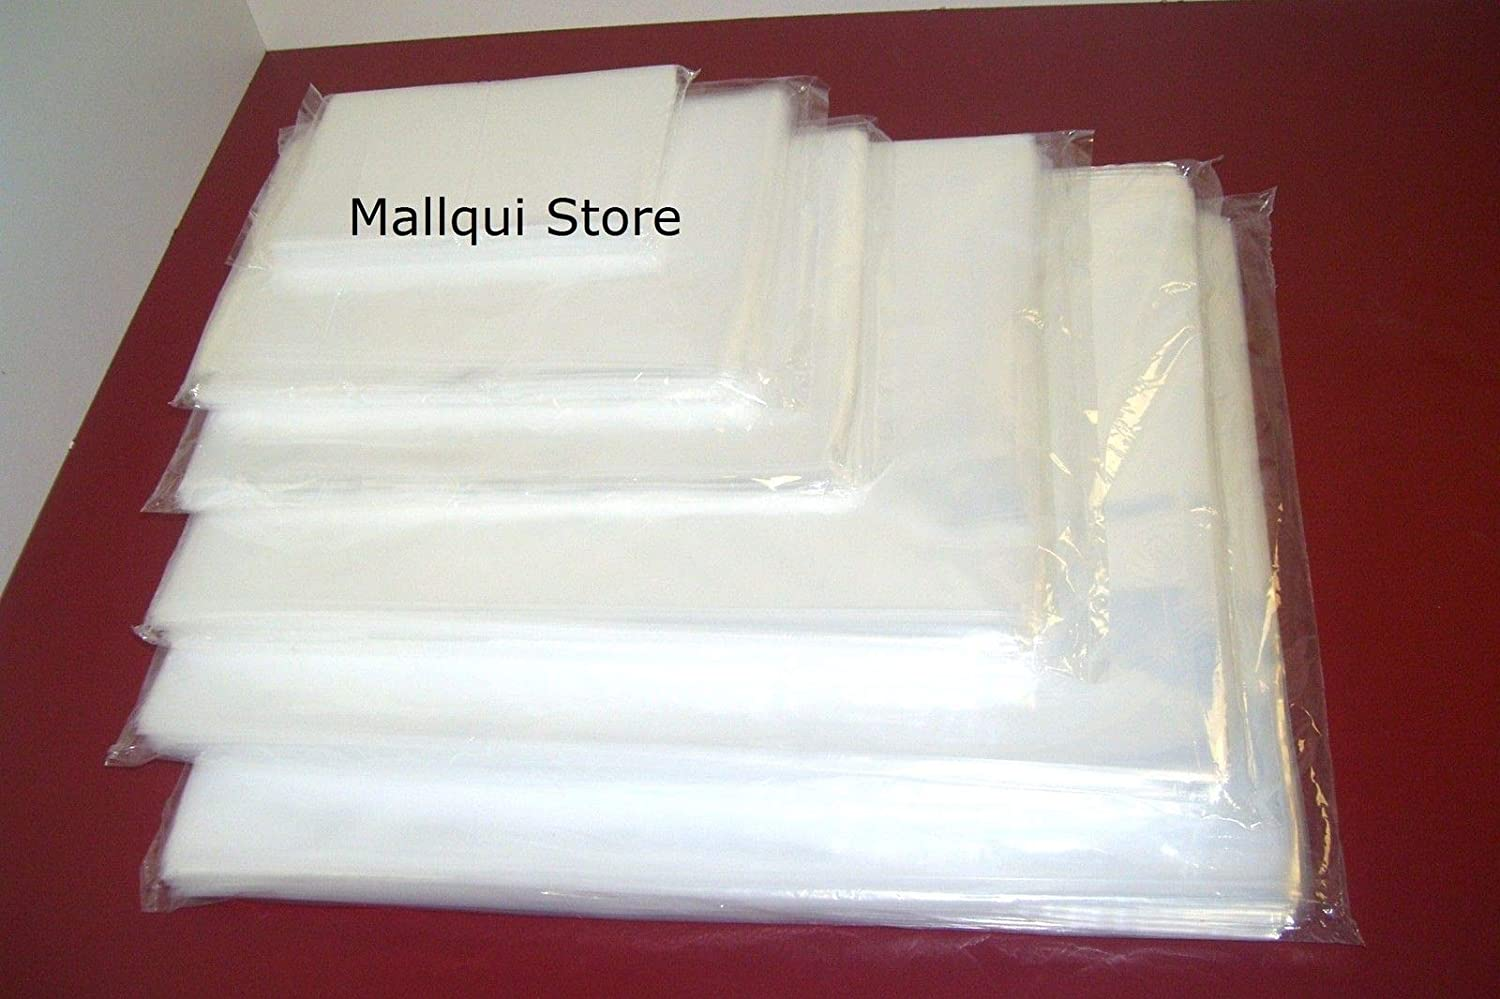 1,000 CLEAR 9 x 12 POLY BAGS PLASTIC LAY FLAT OPEN TOP PACKING ULINE BEST 2 MIL